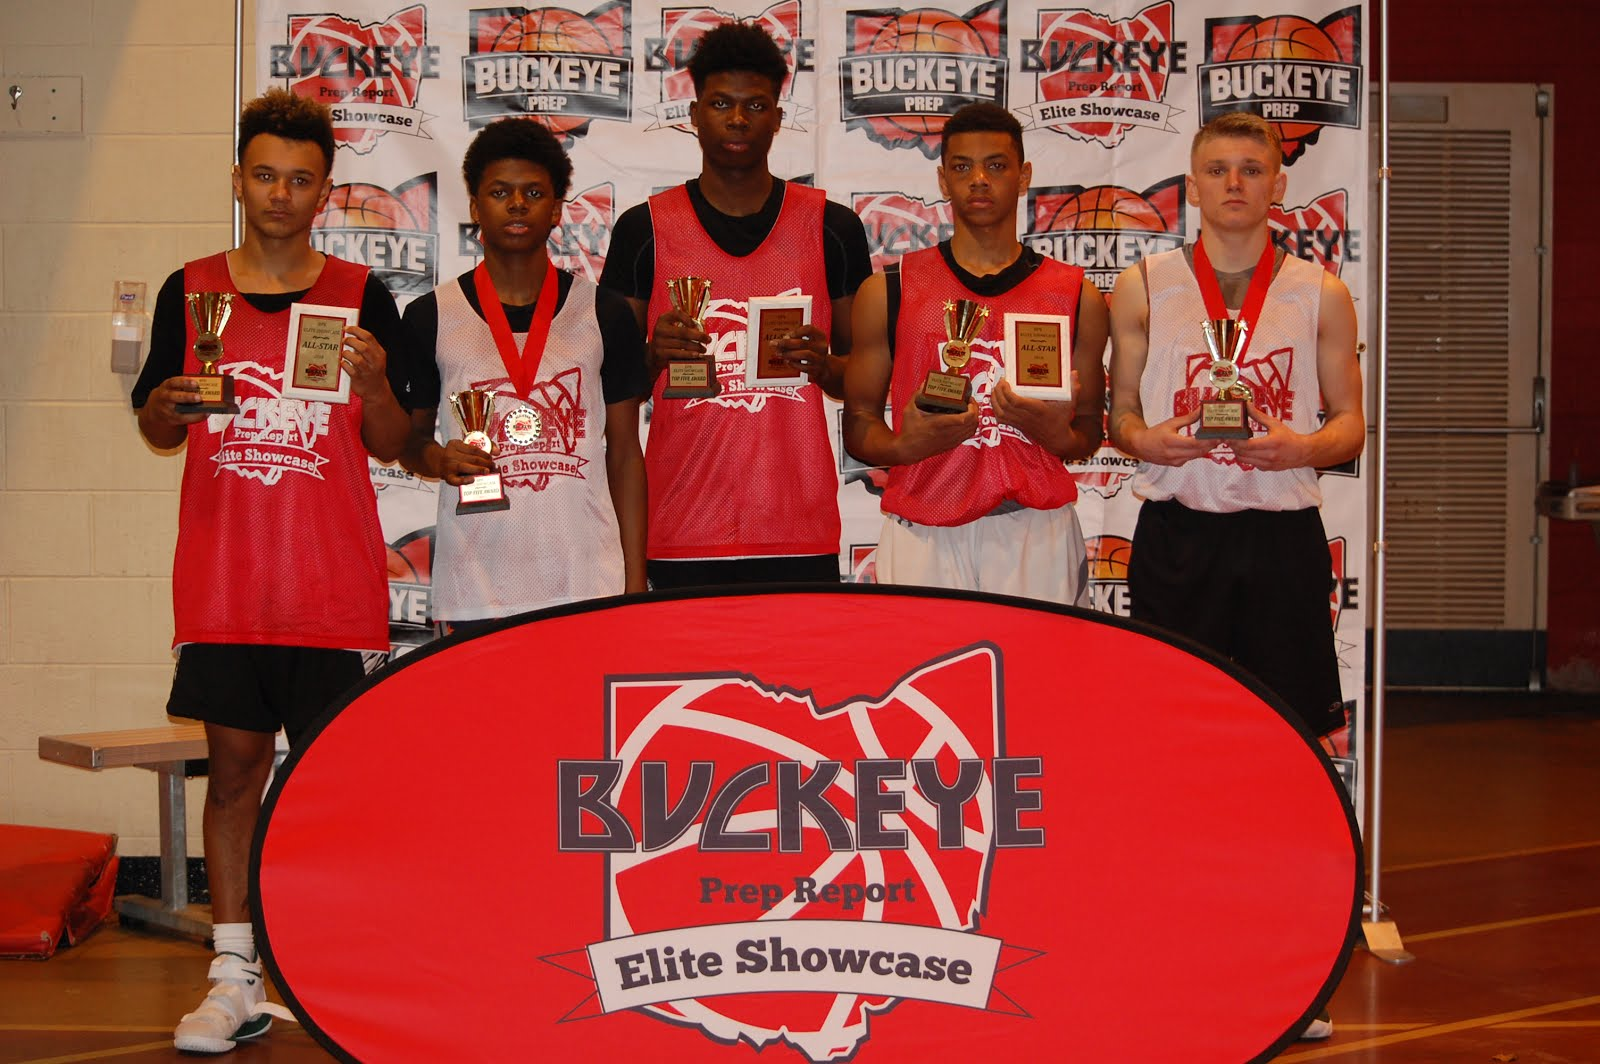 2018 Buckeye Prep Elite Showcase All-Stars